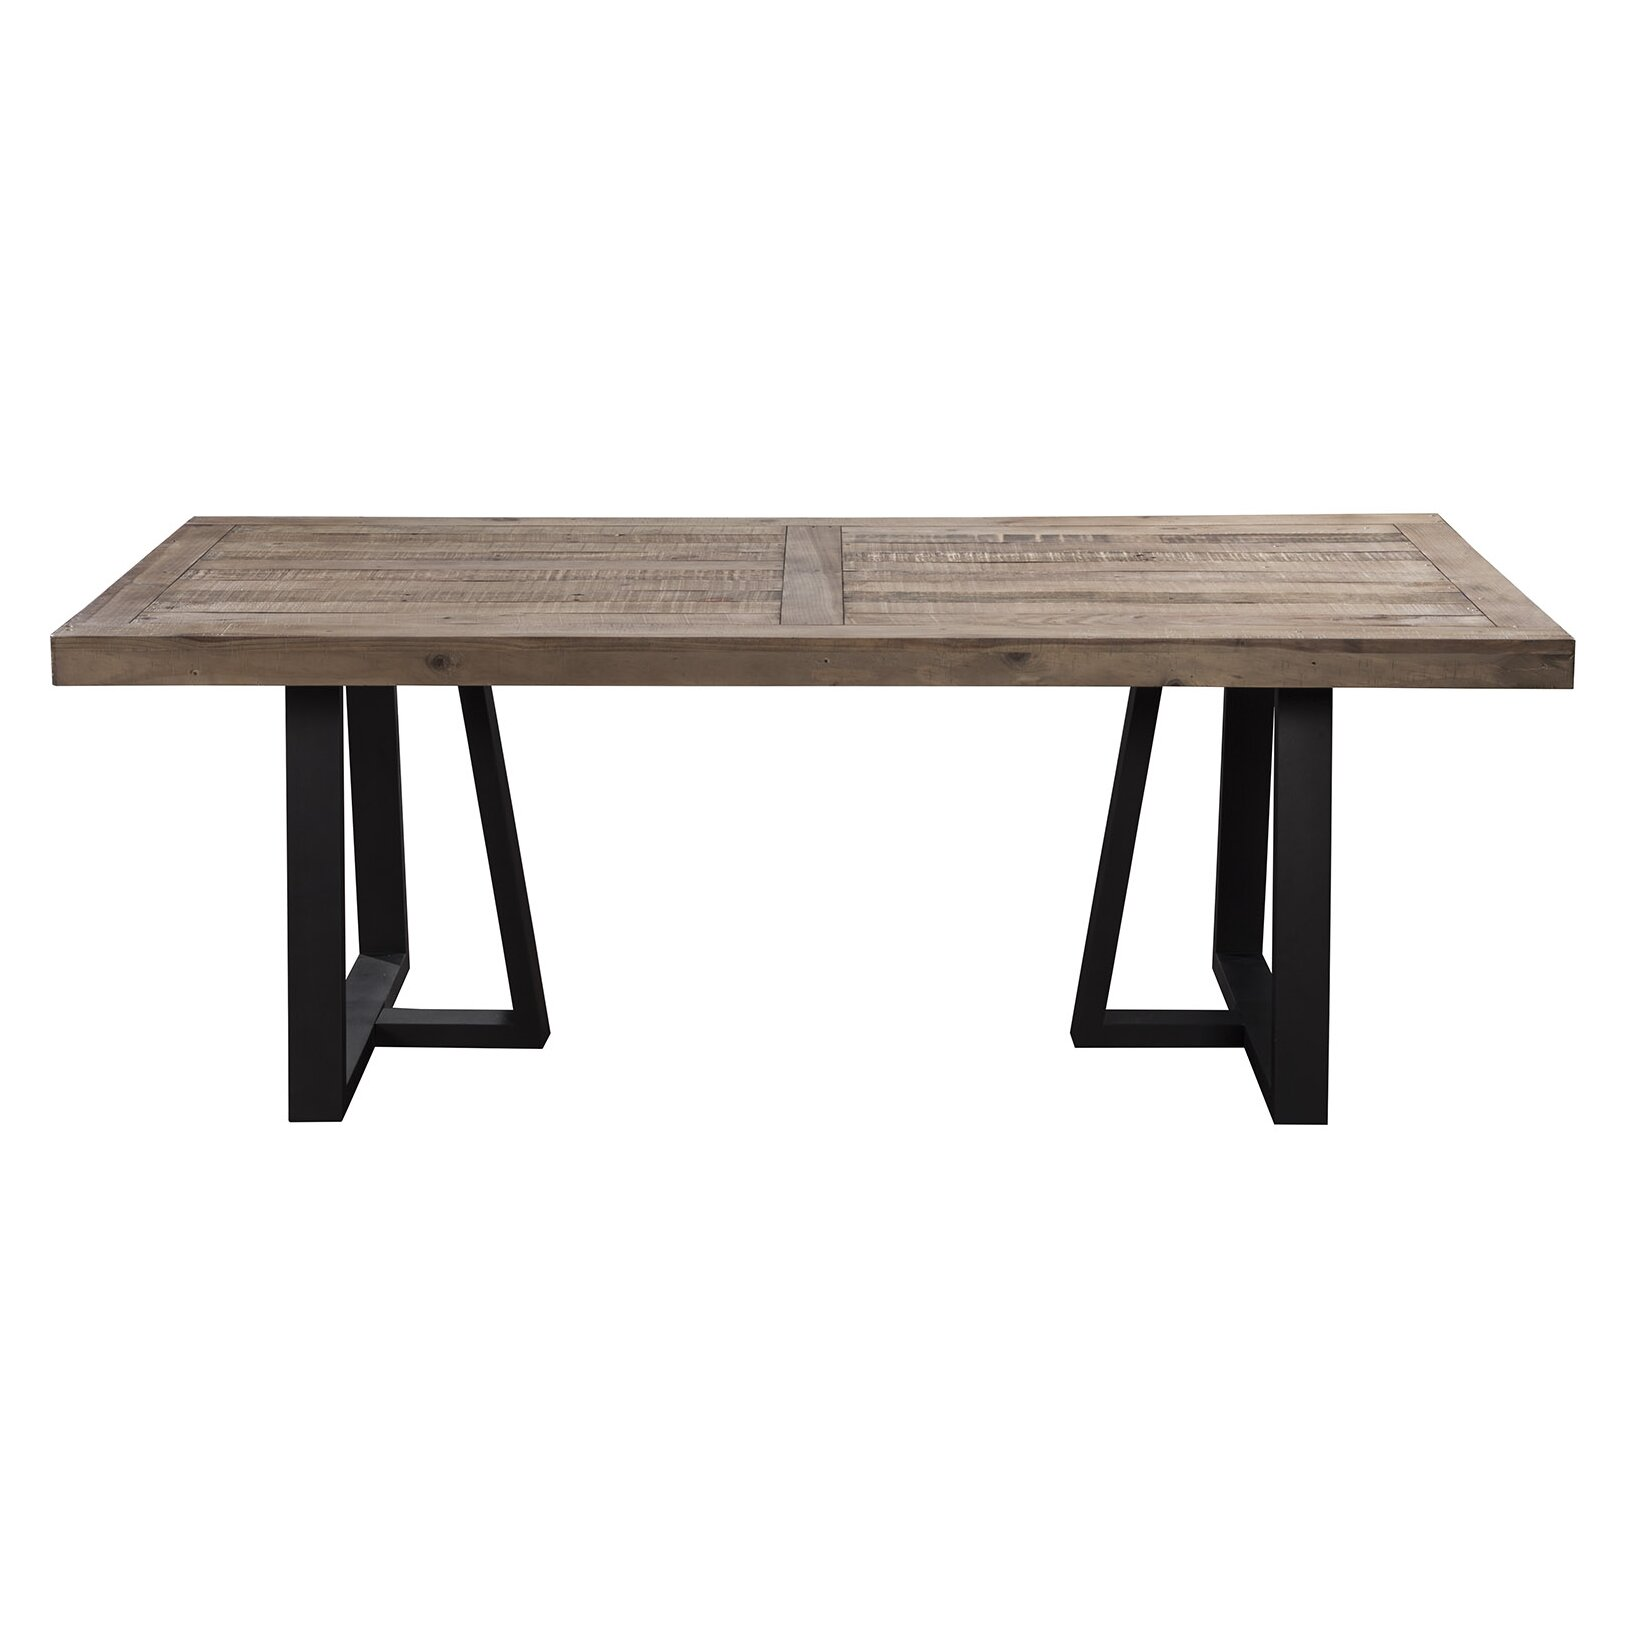 Laurel Foundry Modern Farmhouse Adell Dining Table